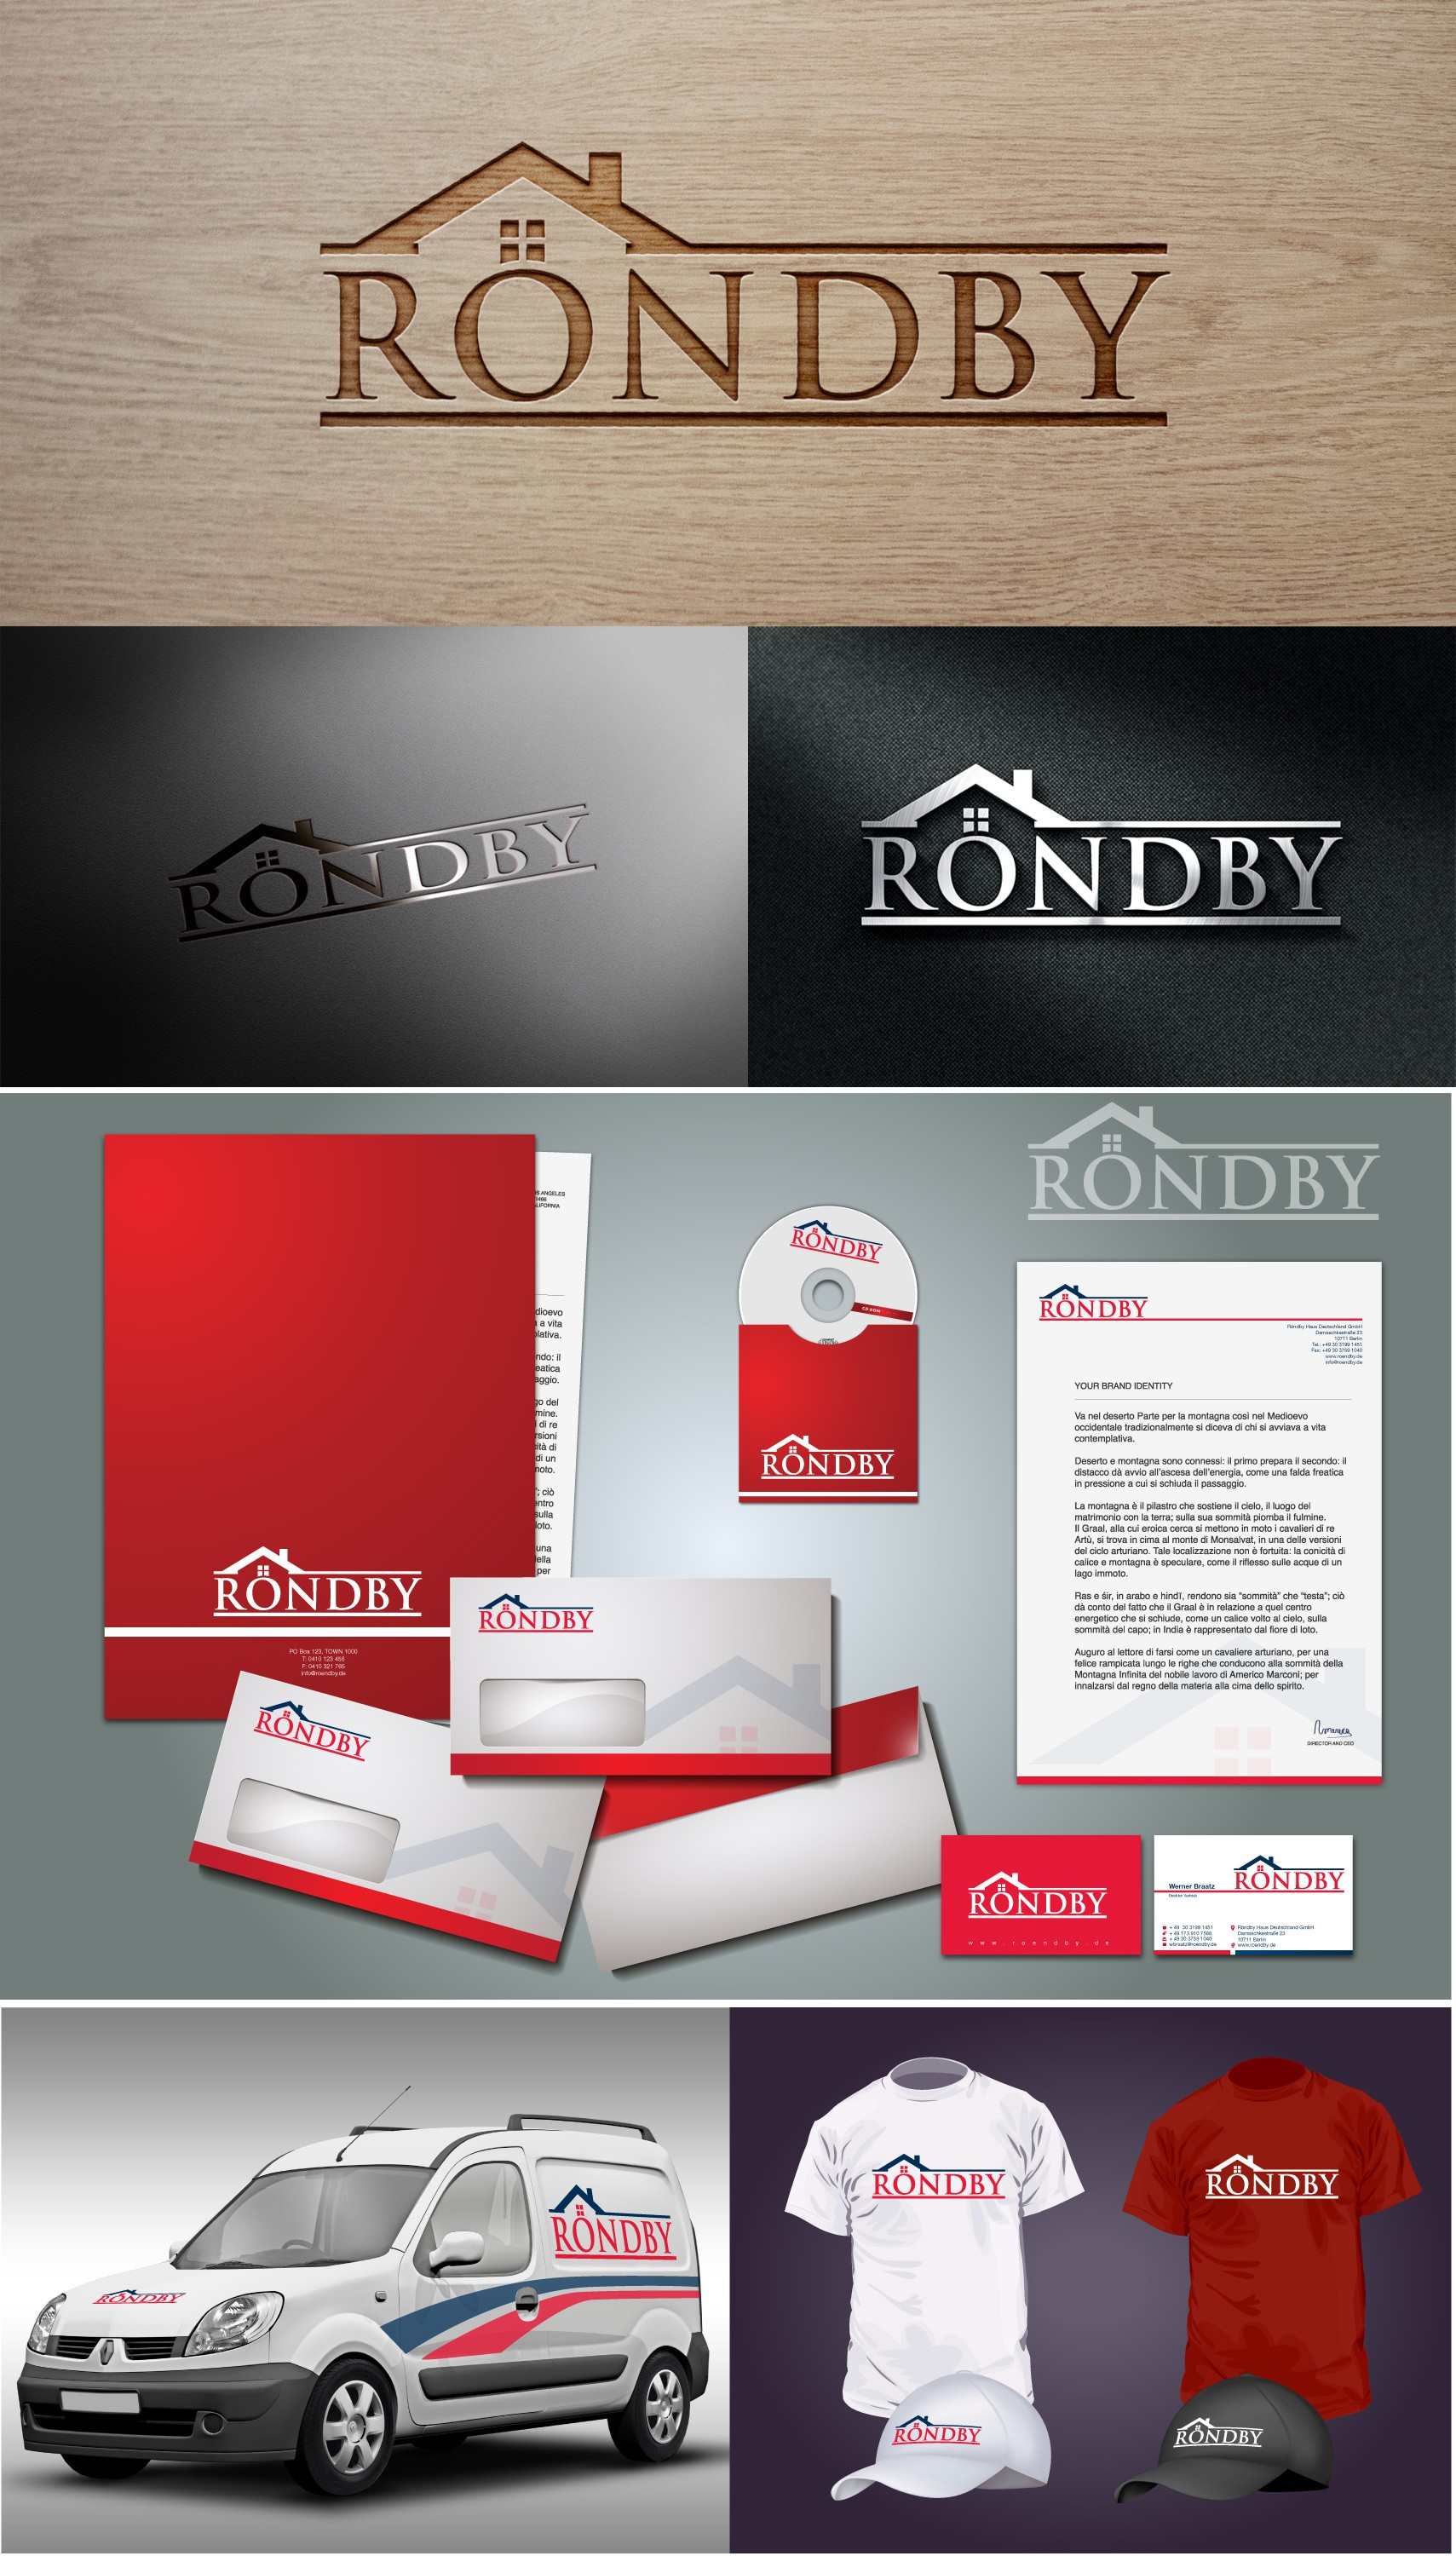 Create Logo & Corporate Identity with danish design for a house building company